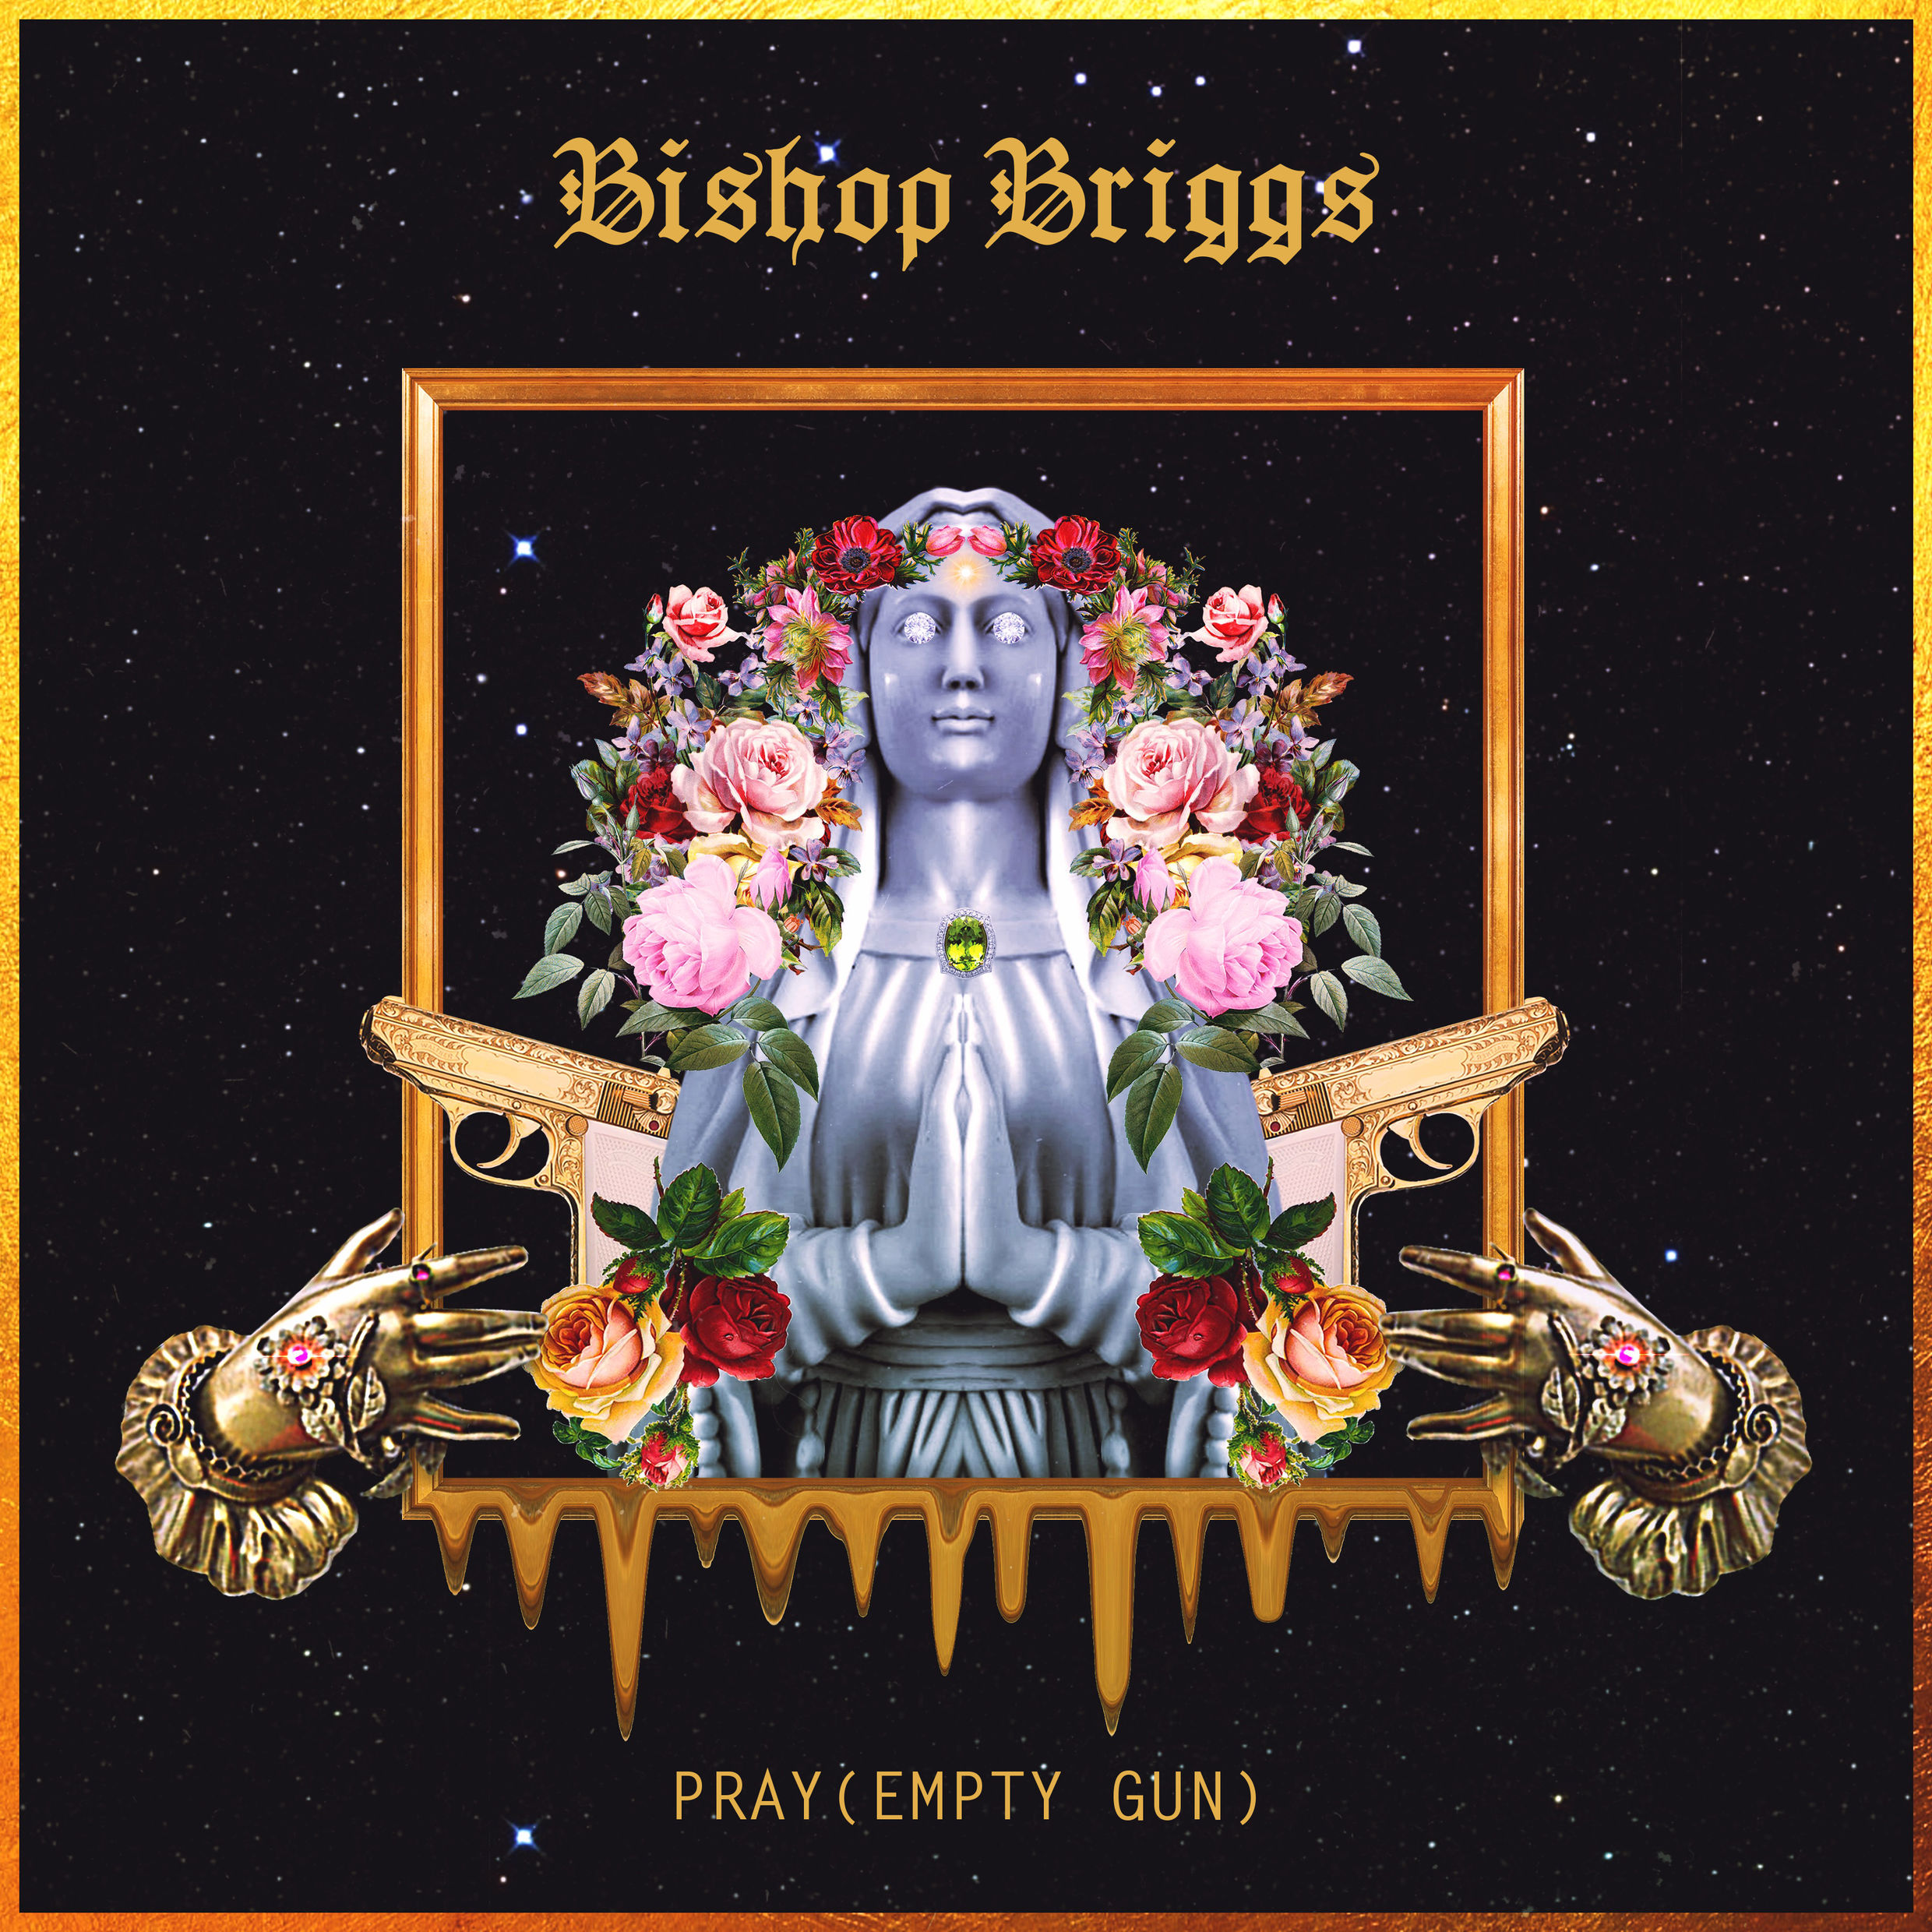 Pray_(Empty_Gun)_Bishop_Briggs